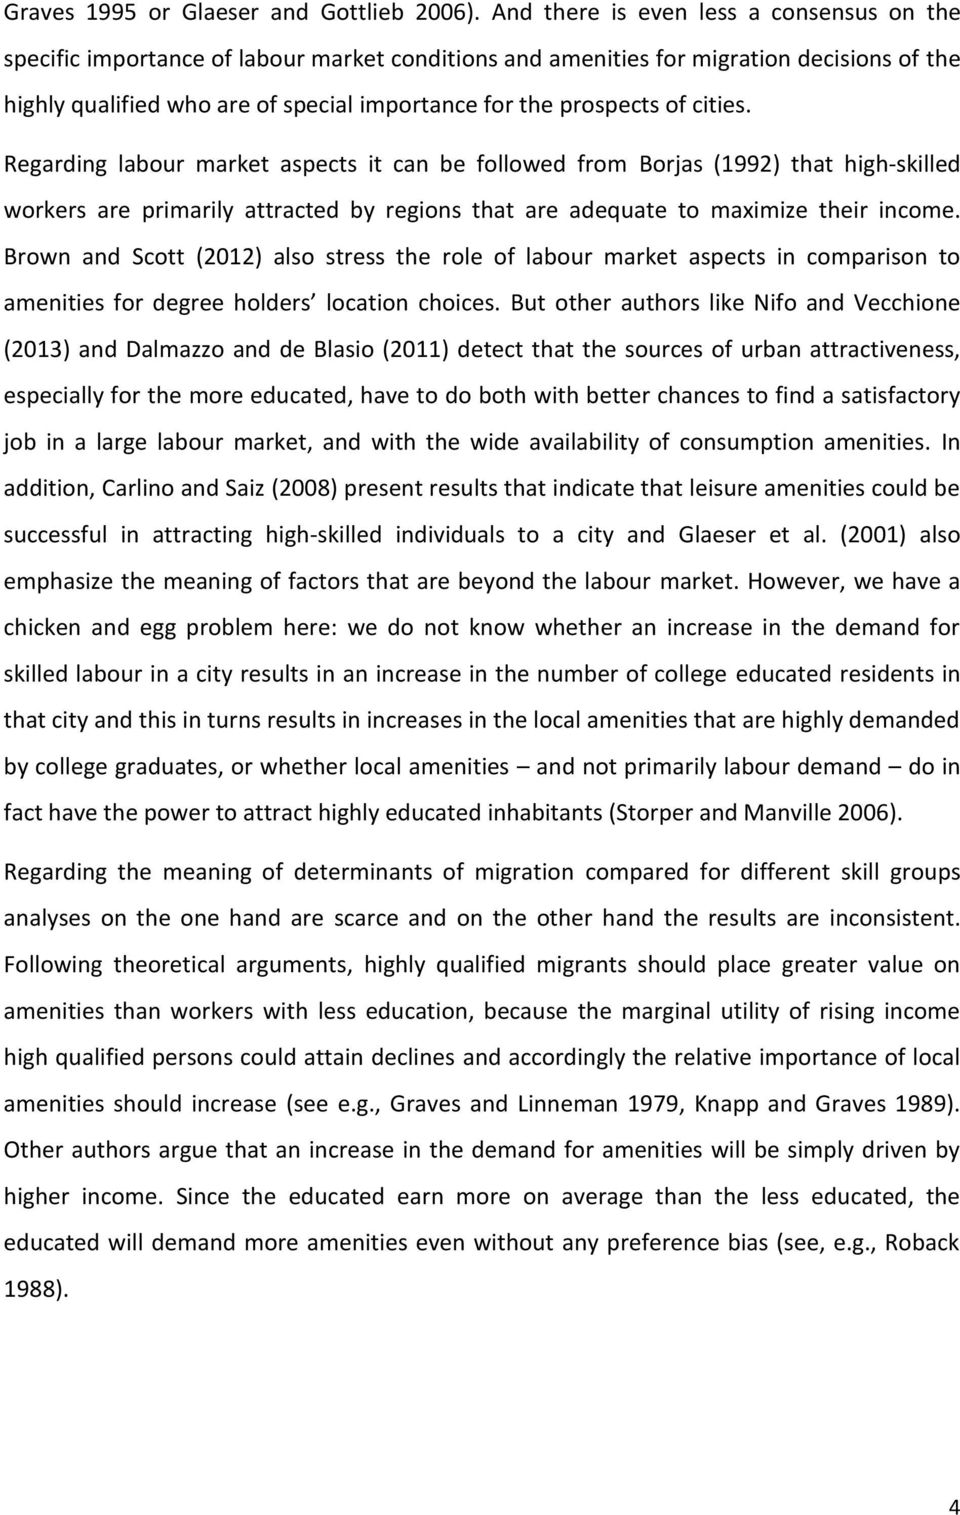 of cities. Regarding labour market aspects it can be followed from Borjas (1992) that high-skilled workers are primarily attracted by regions that are adequate to maximize their income.